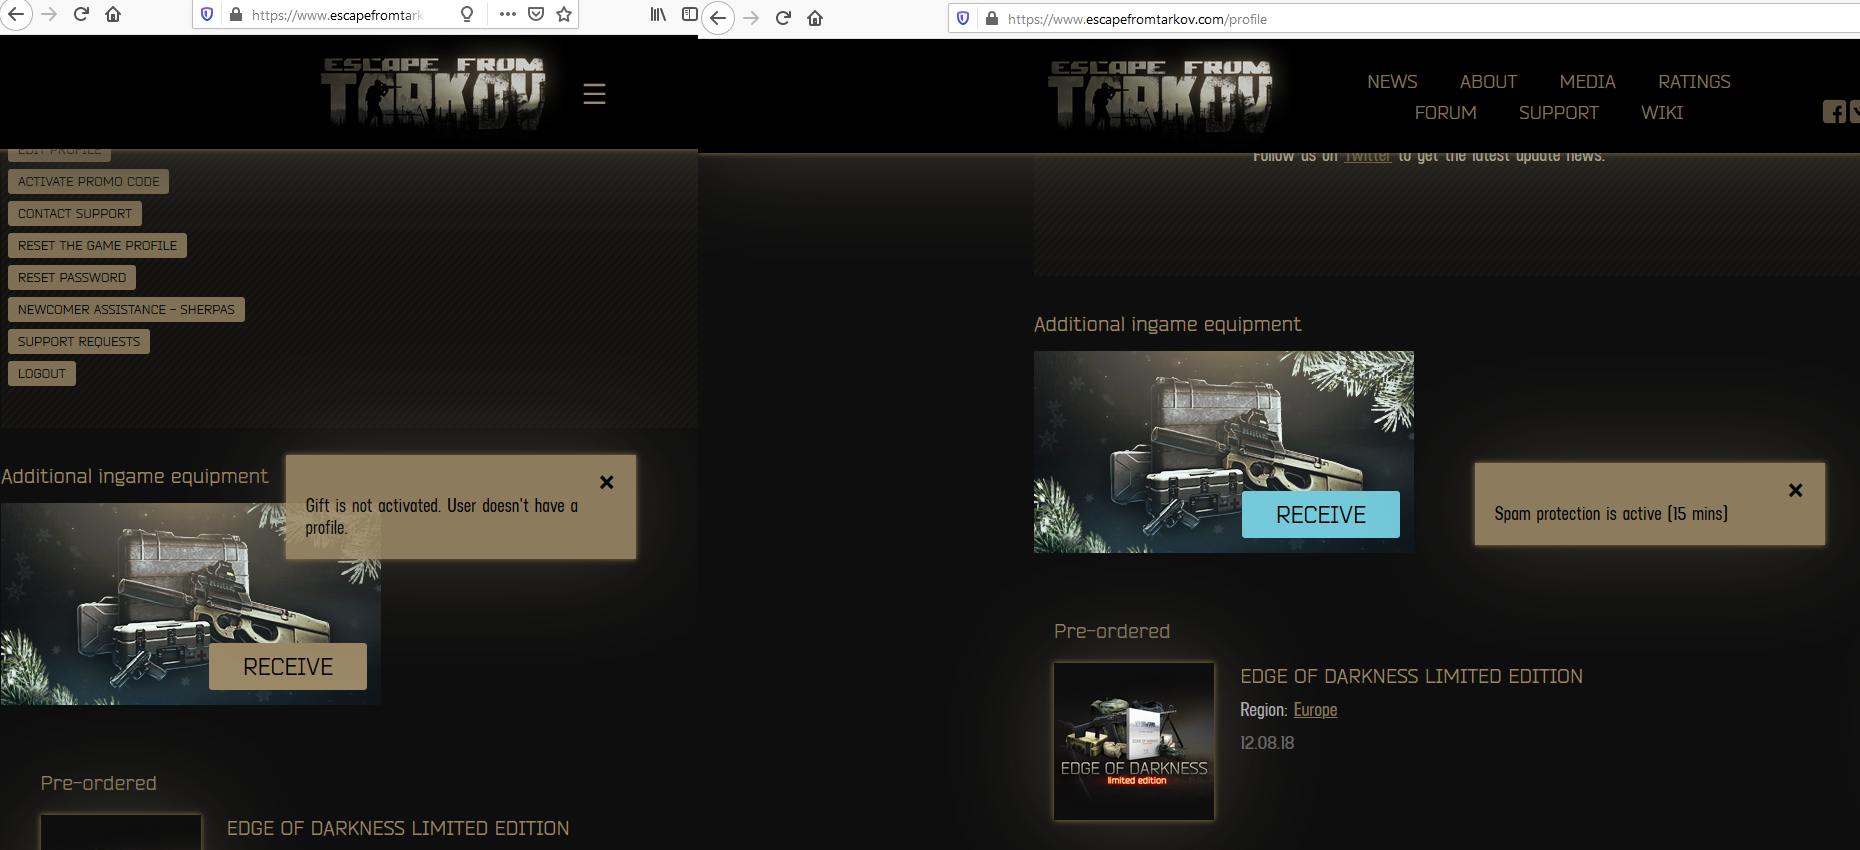 New Year Event In Escape From Tarkov 2020 Page 2 Project News Escape From Tarkov Forum